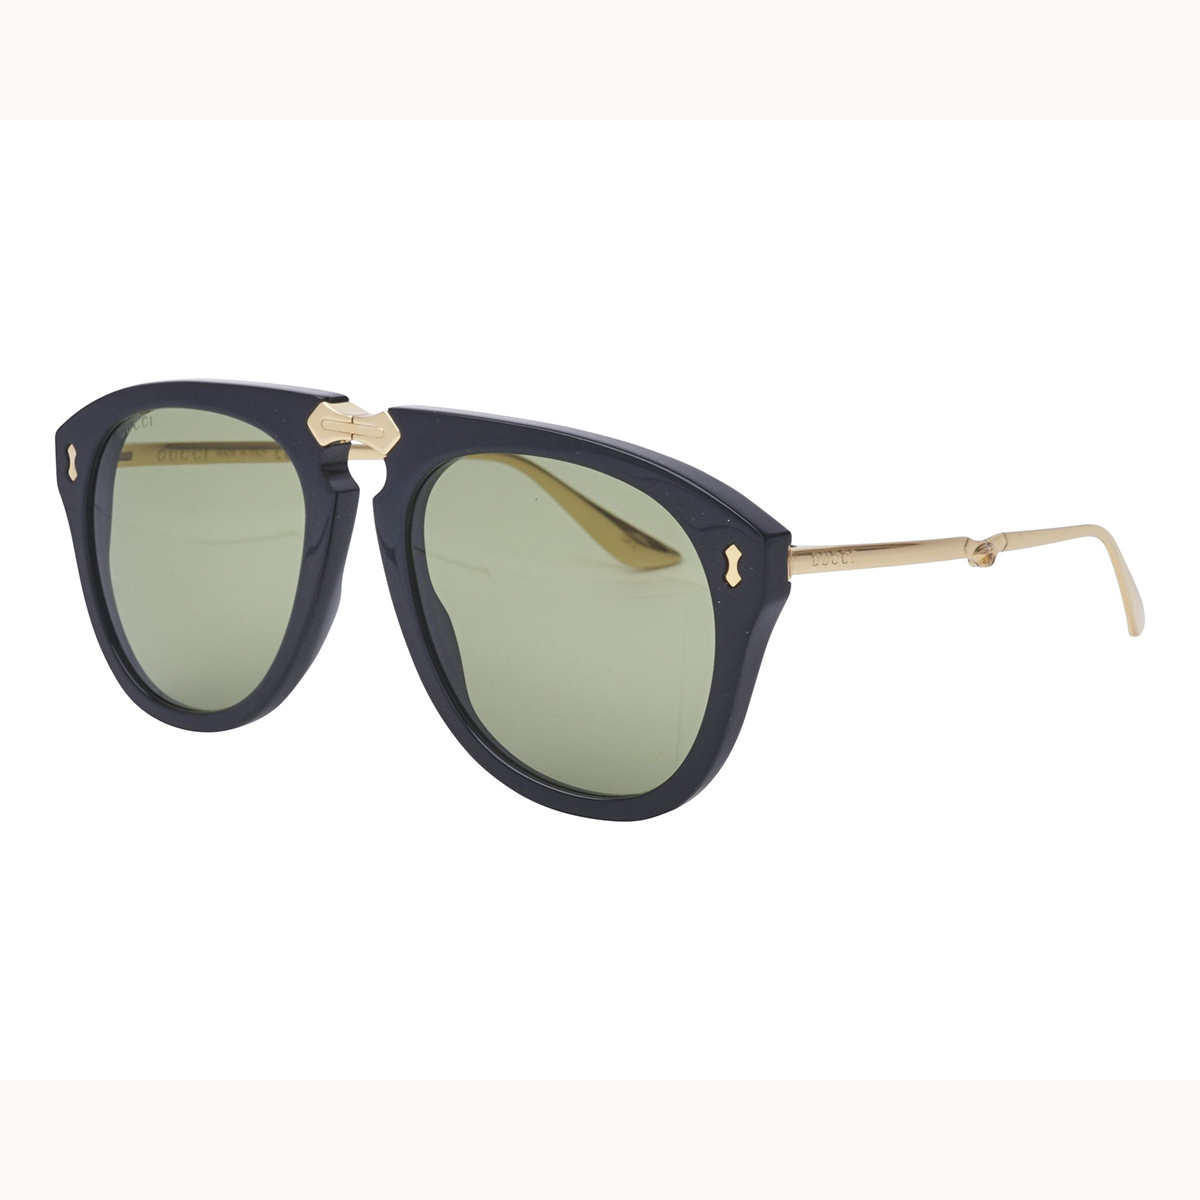 d844d6c2434 Gucci GG0305S 001 Fold-able Black Aviator Sunglasses